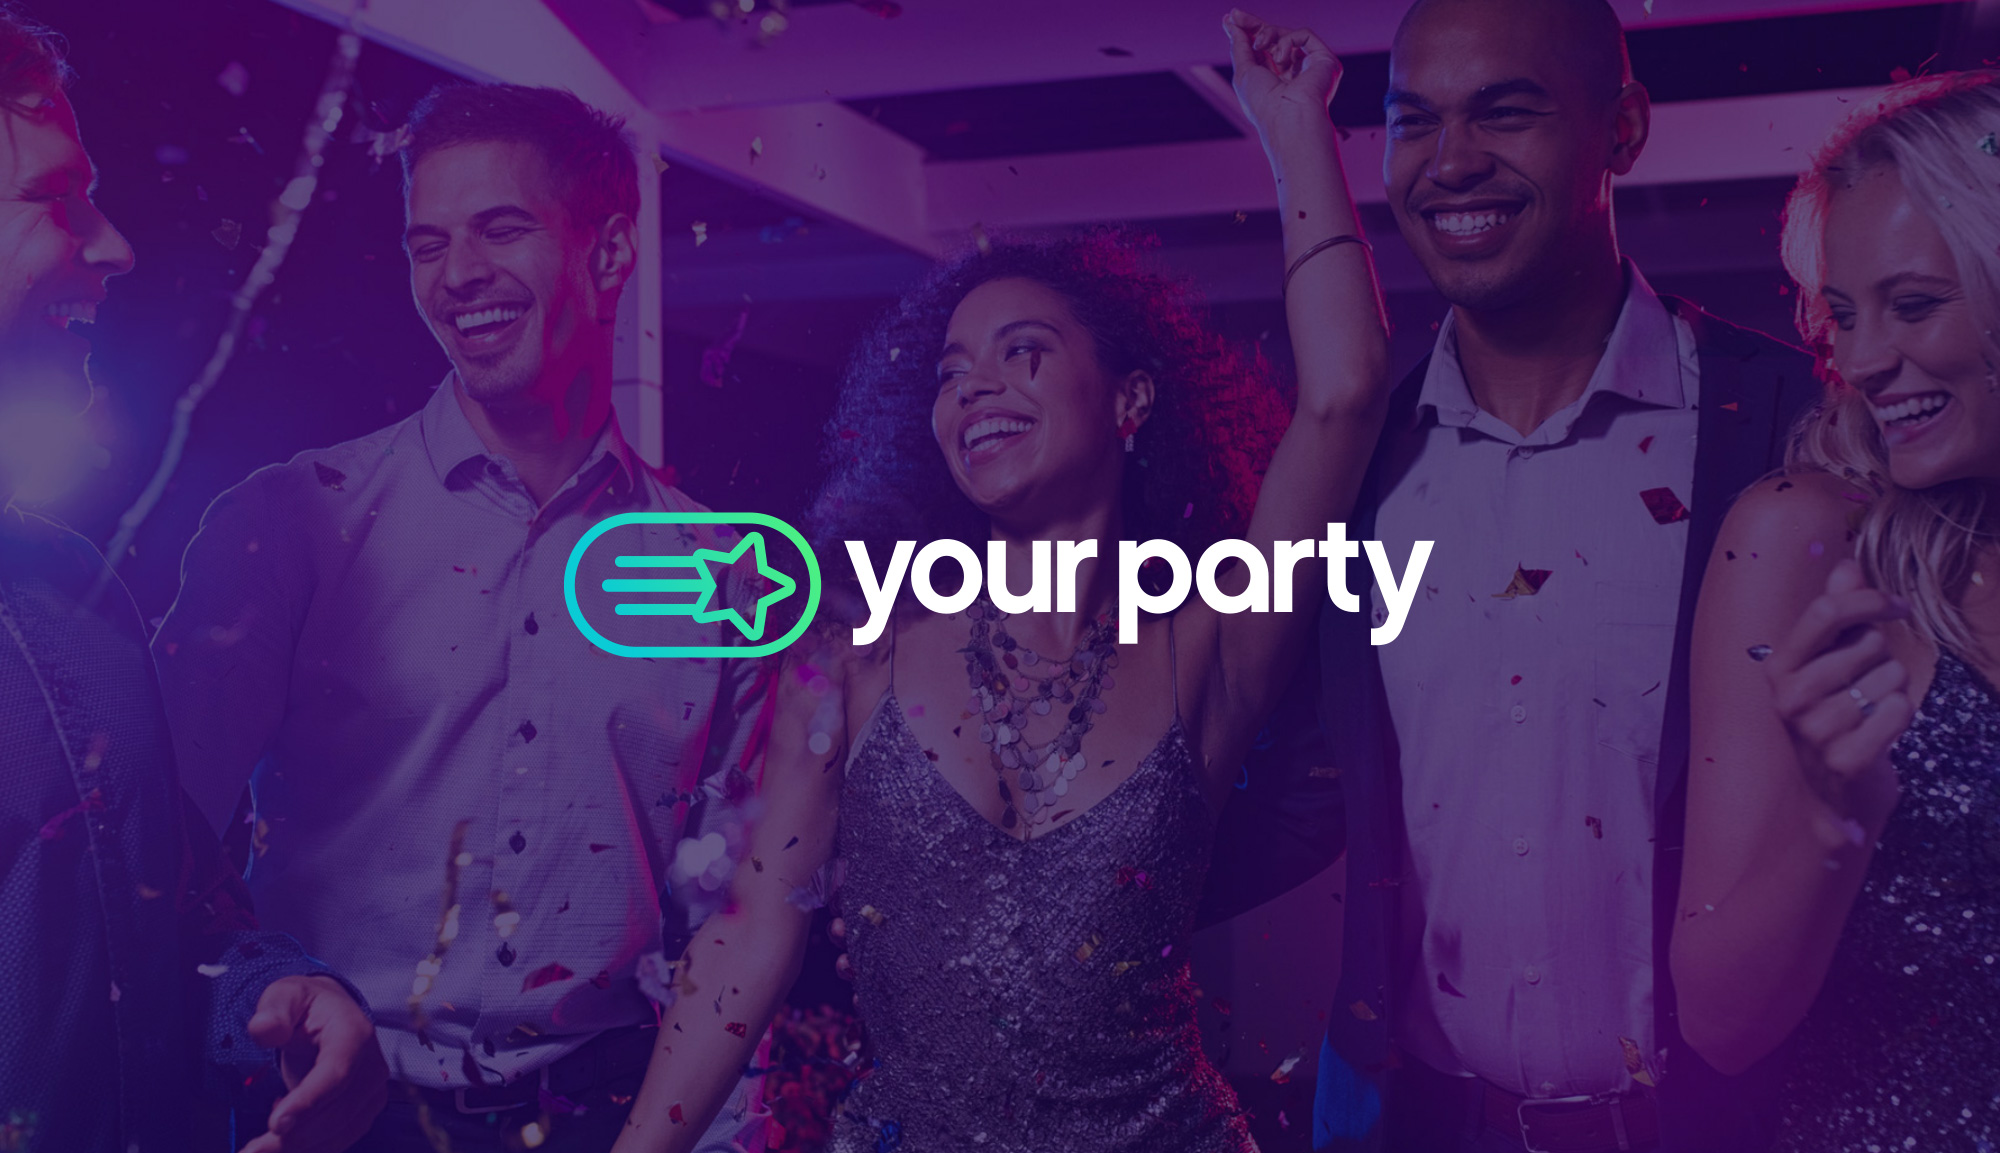 Your Party - UI Design - Graphiste Freelance Lille